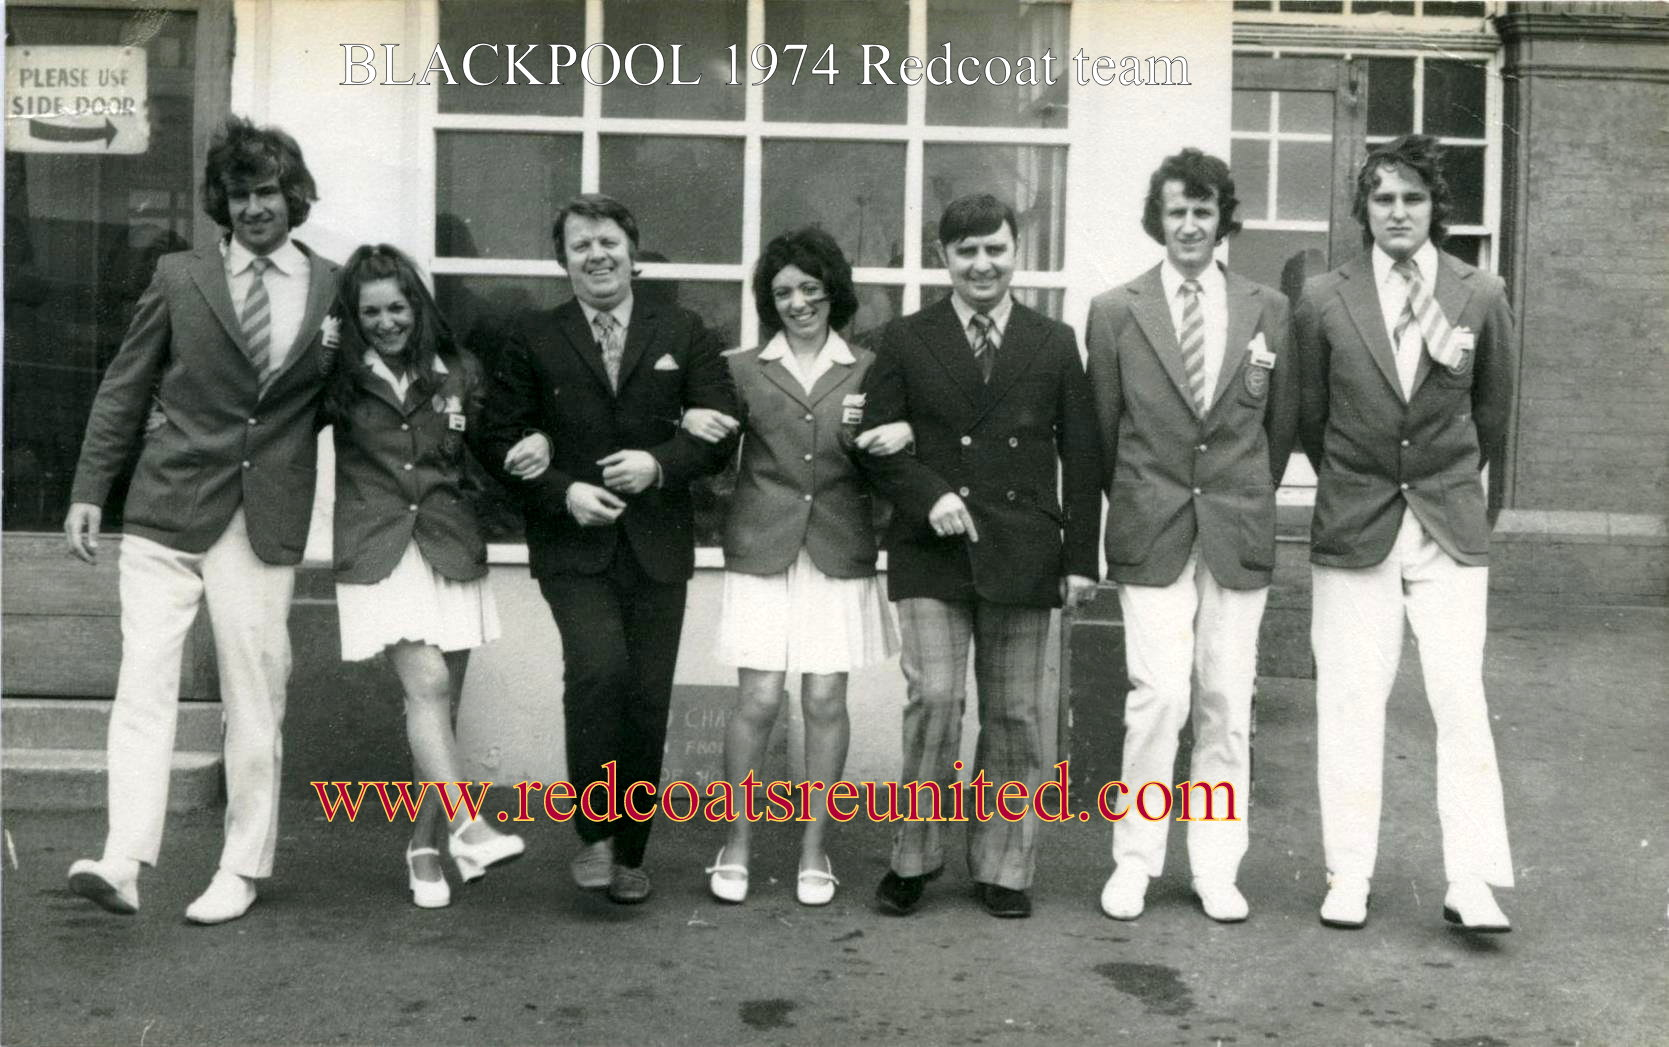 Butlins Blackpool 1974 Redcoat team at Redcoats Reunited